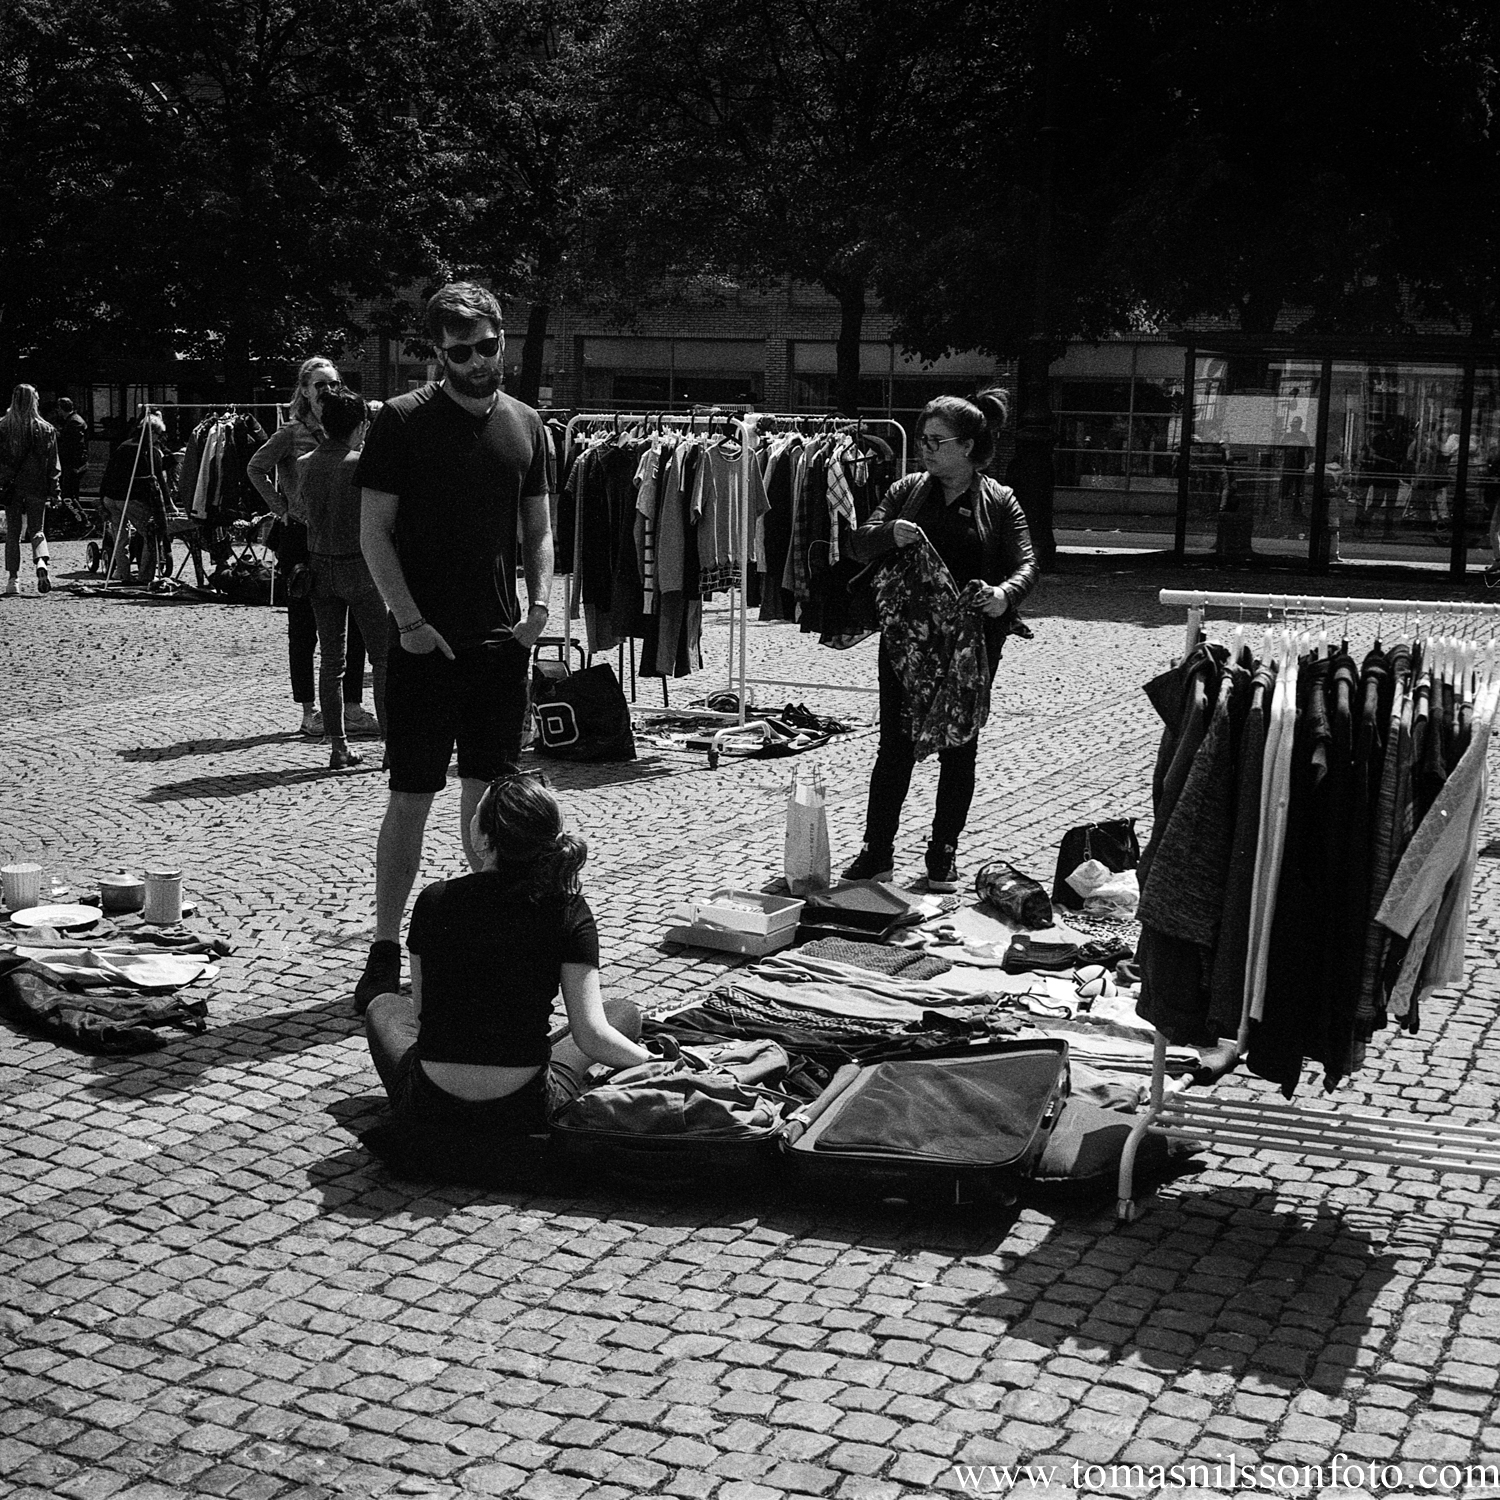 Day 164 - June 13: Chasing bargains at the flea market